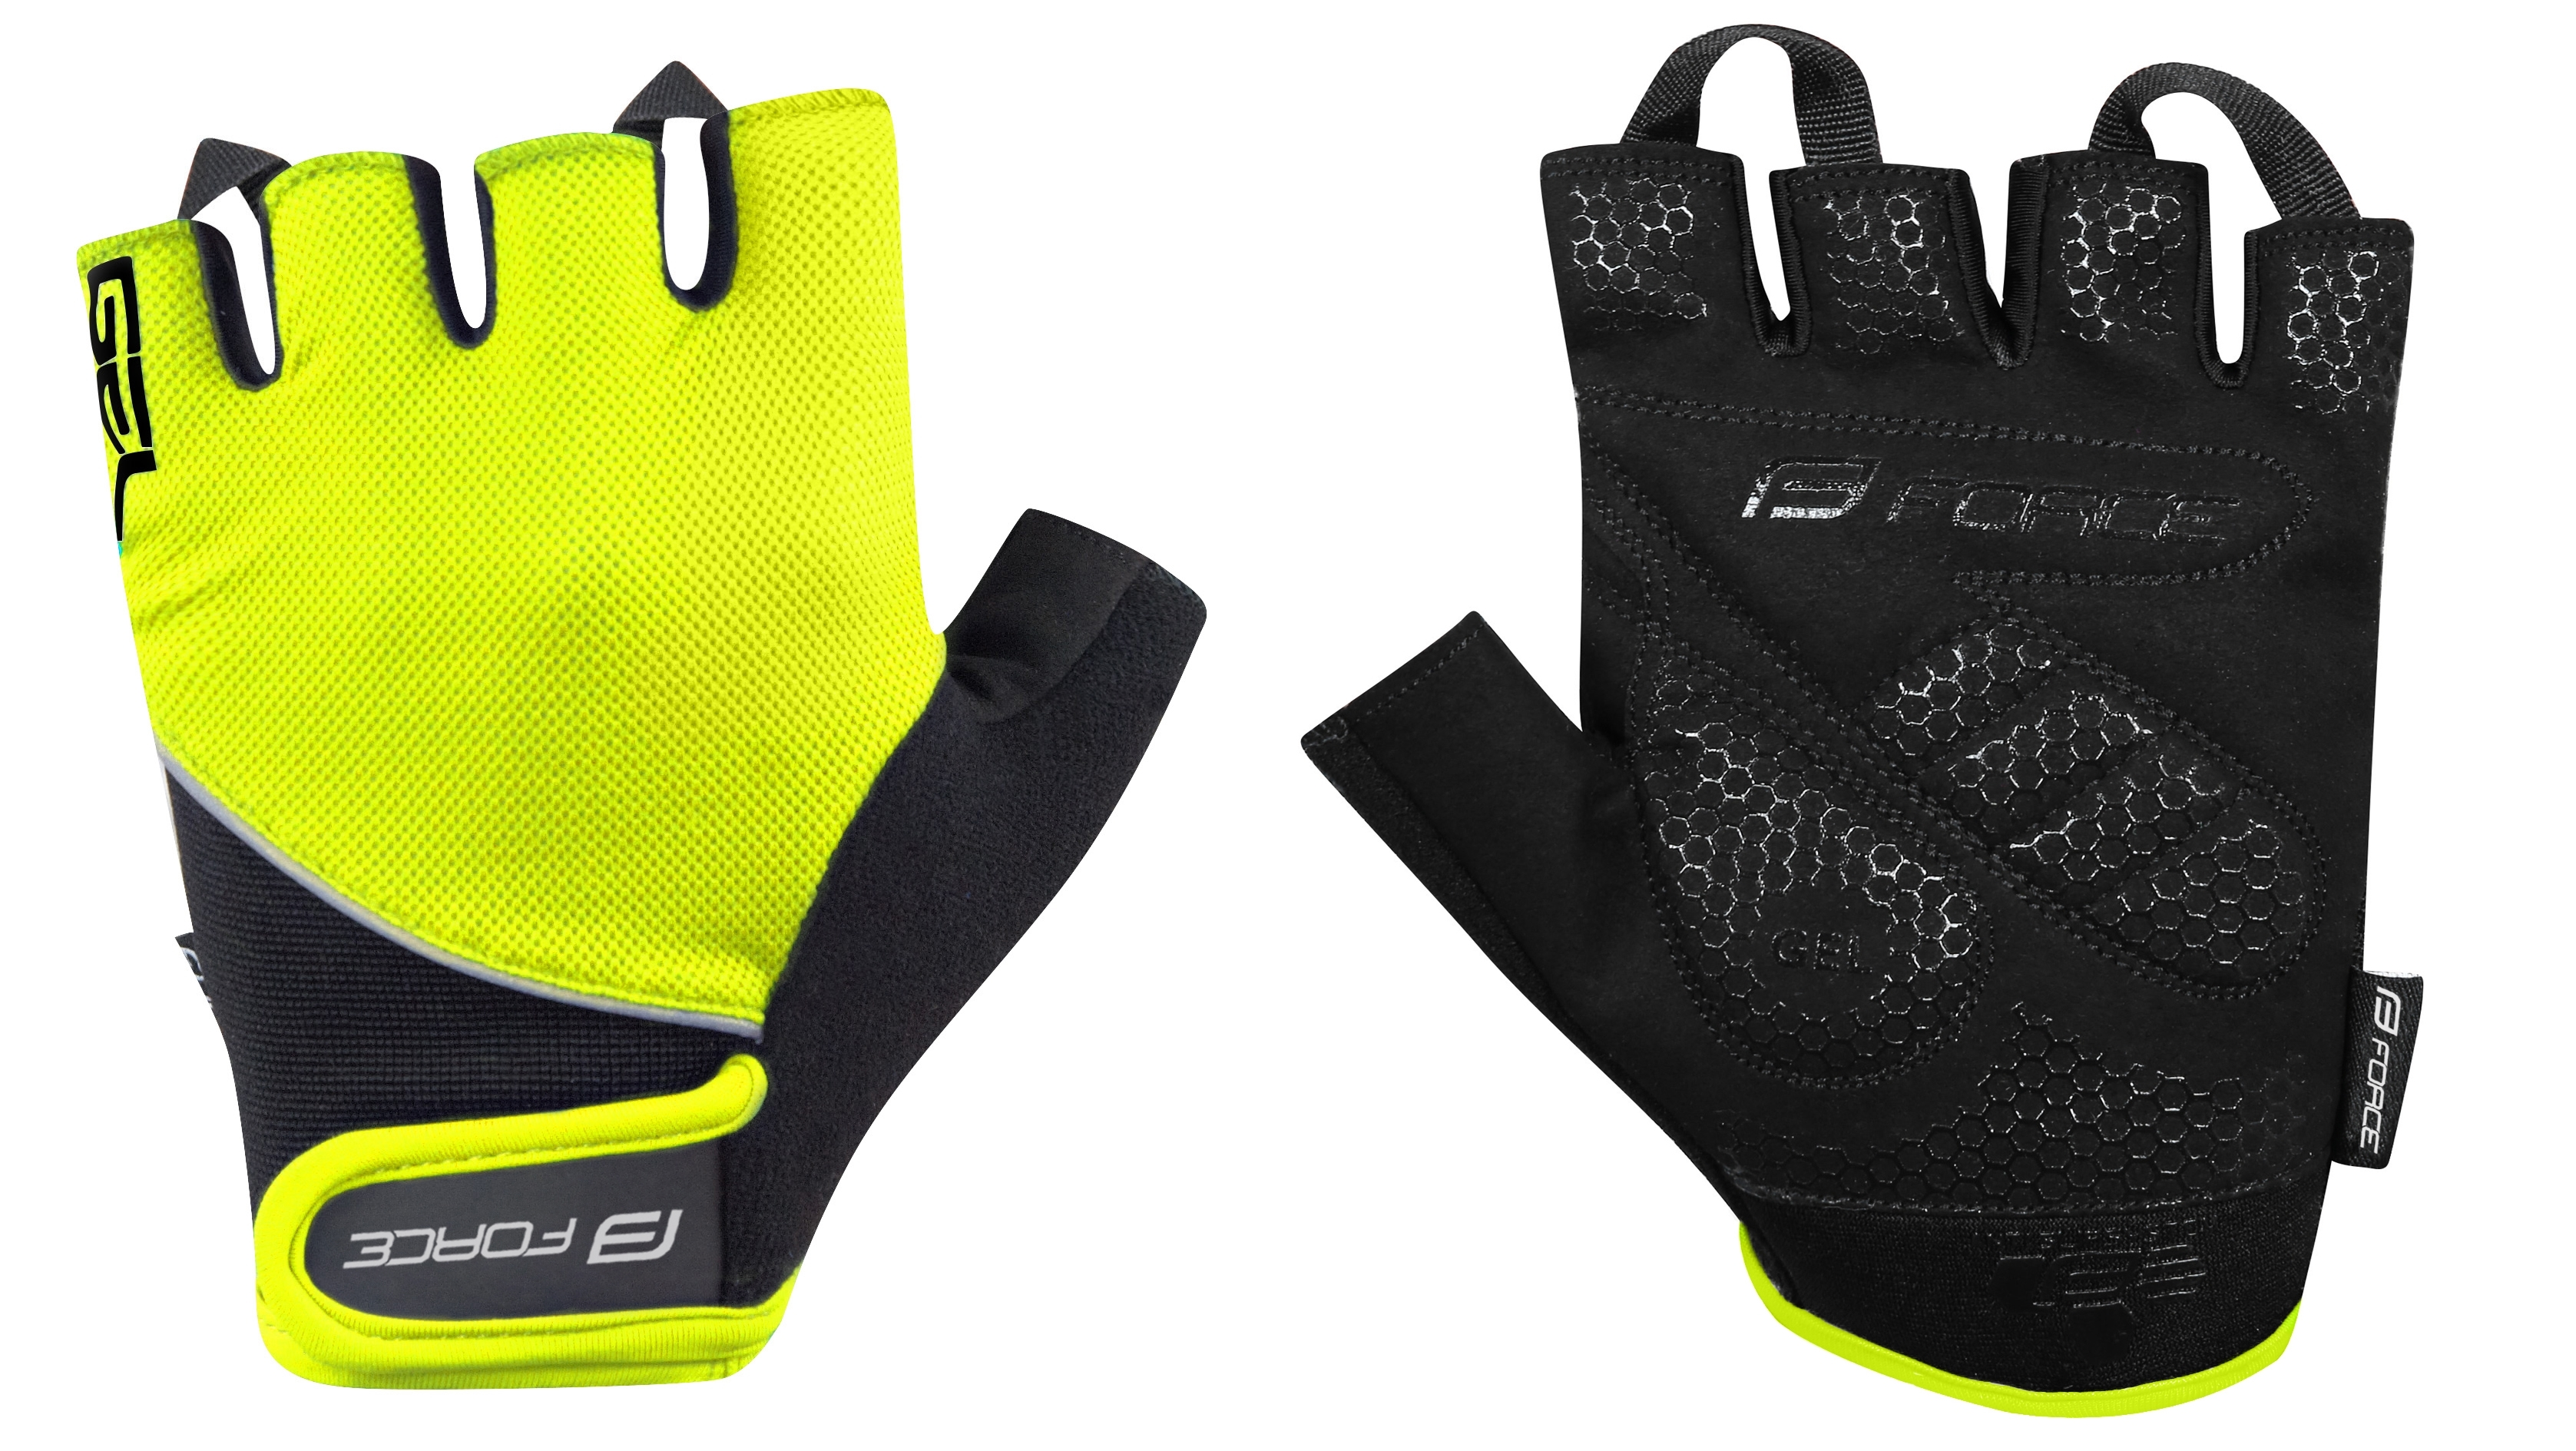 rukavice FORCE GEL 17, fluo XS